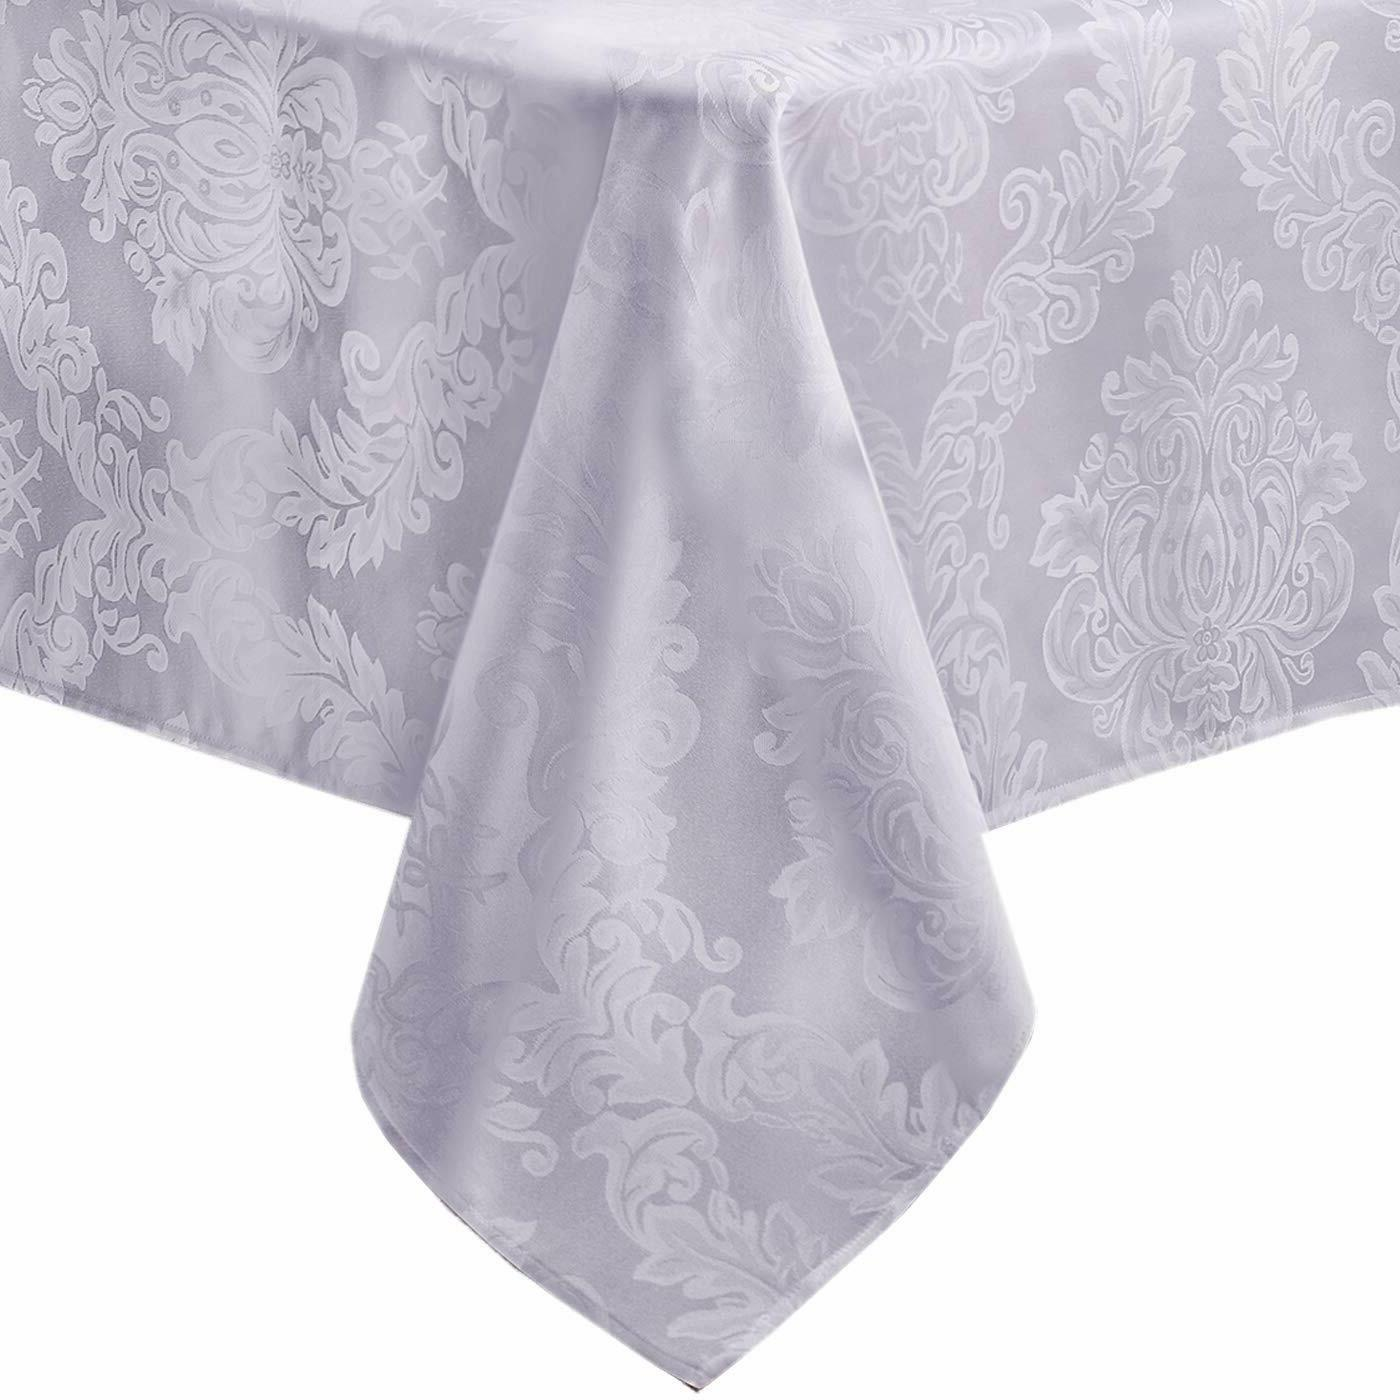 Fabric Damask Dining Table Tablecloths 52